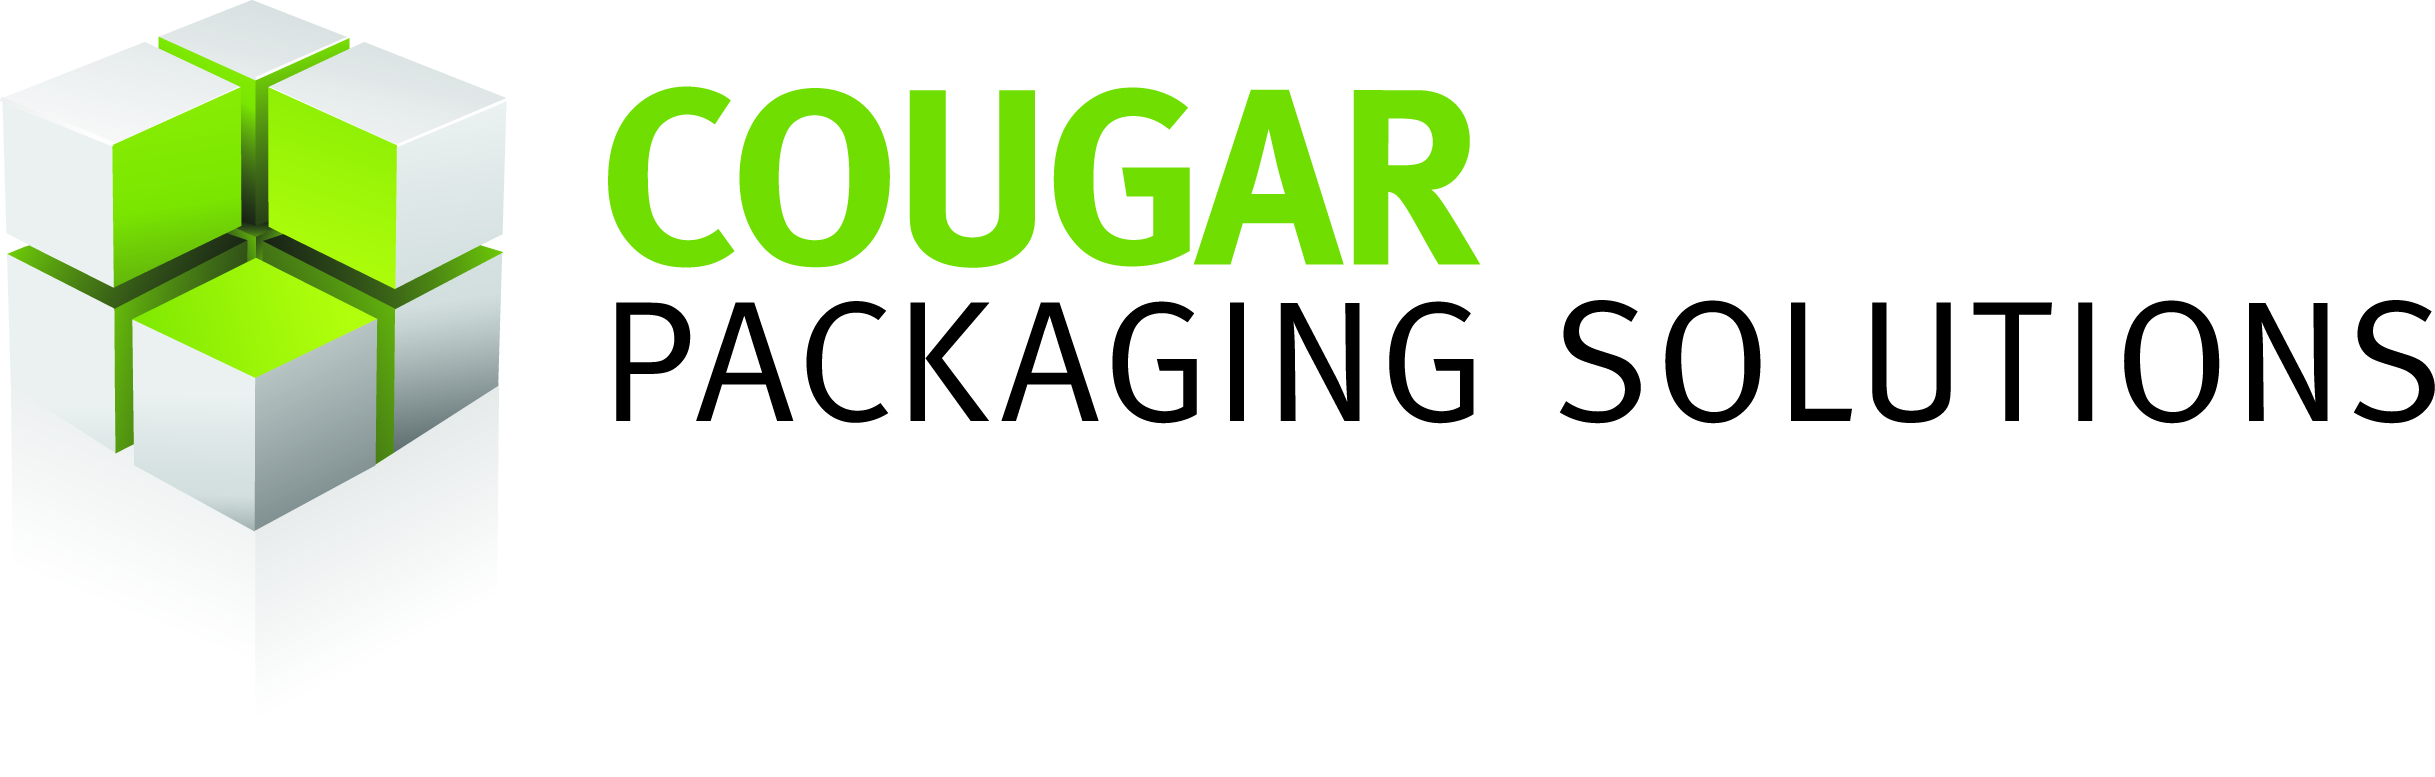 Cougar Packaging Solutions, Inc. Photo